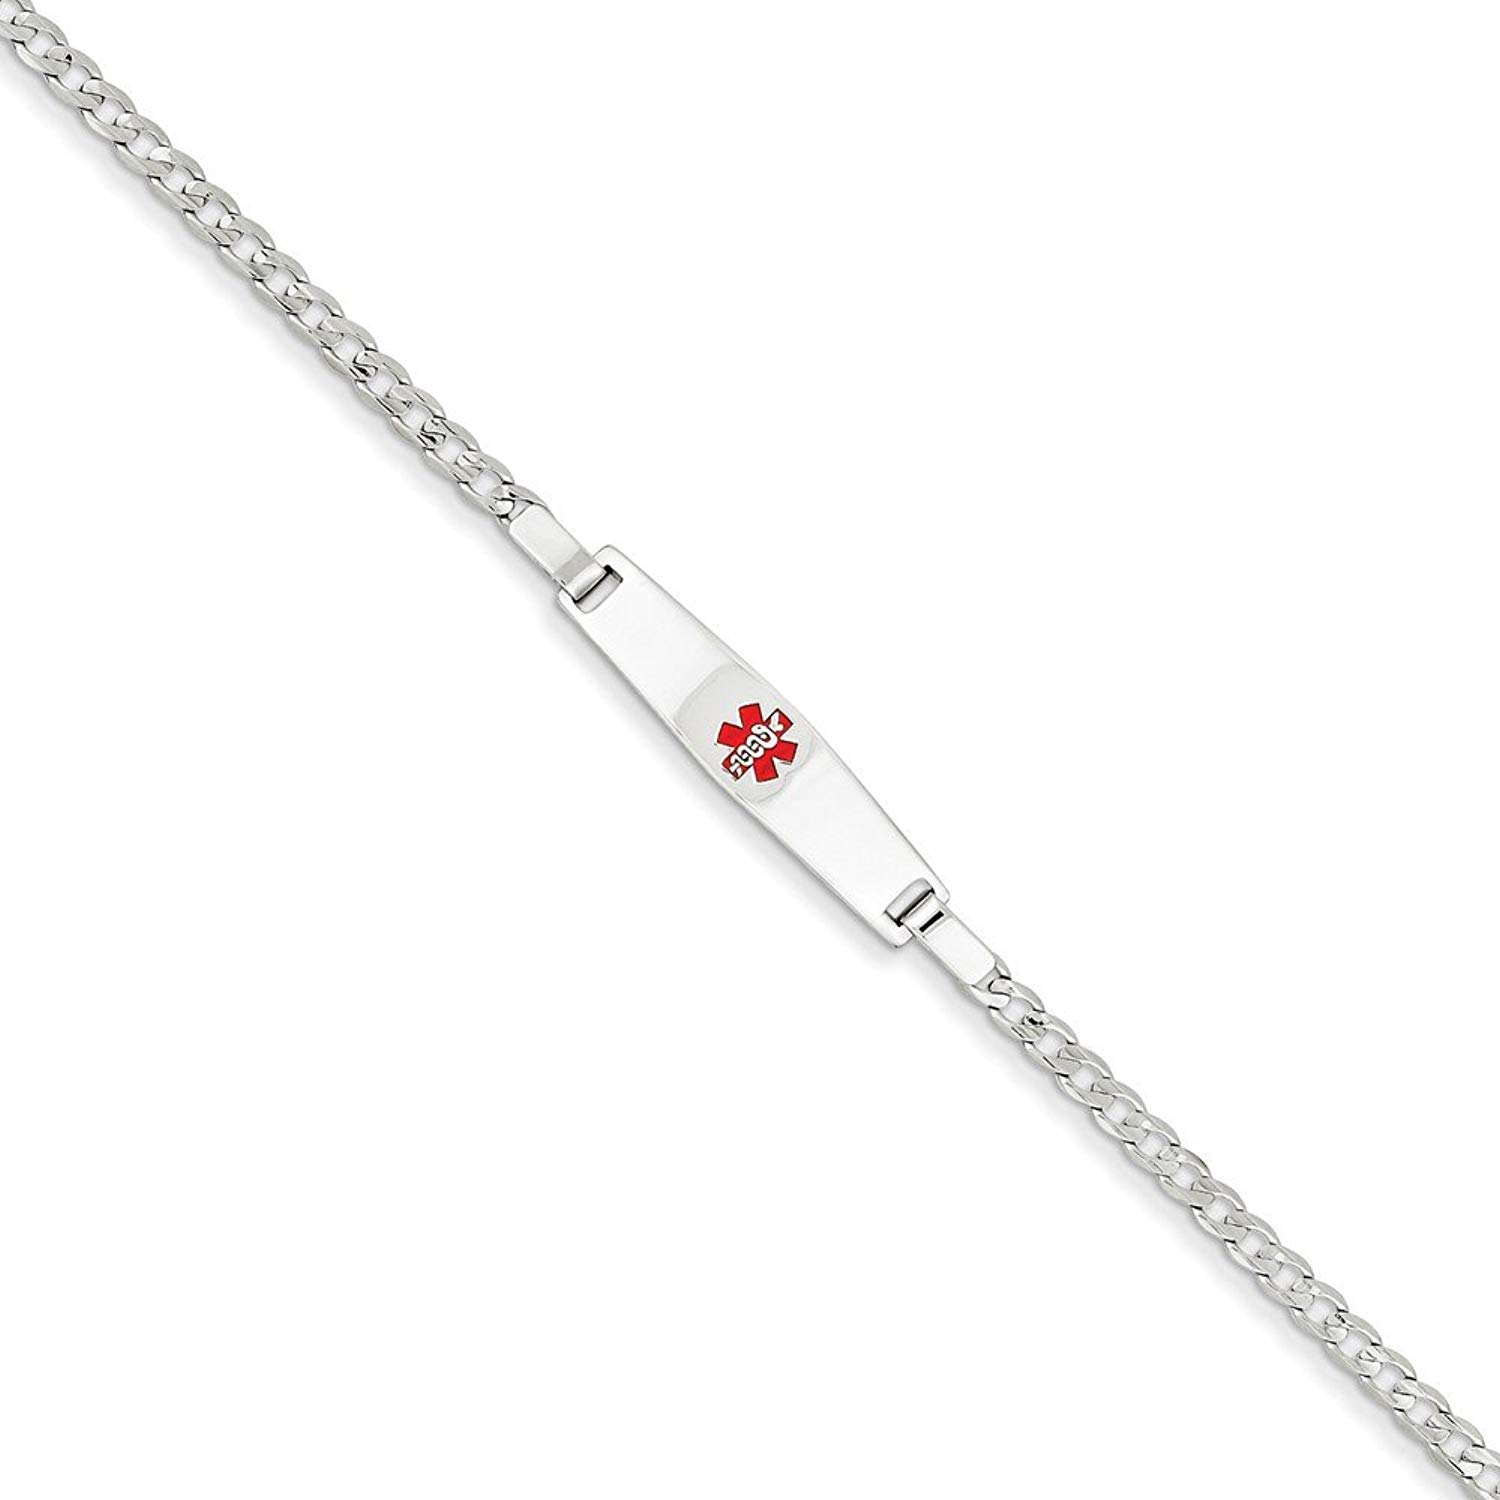 Top 10 Jewelry Gift 14k White Gold Medical Jewelry Children's Bracelet